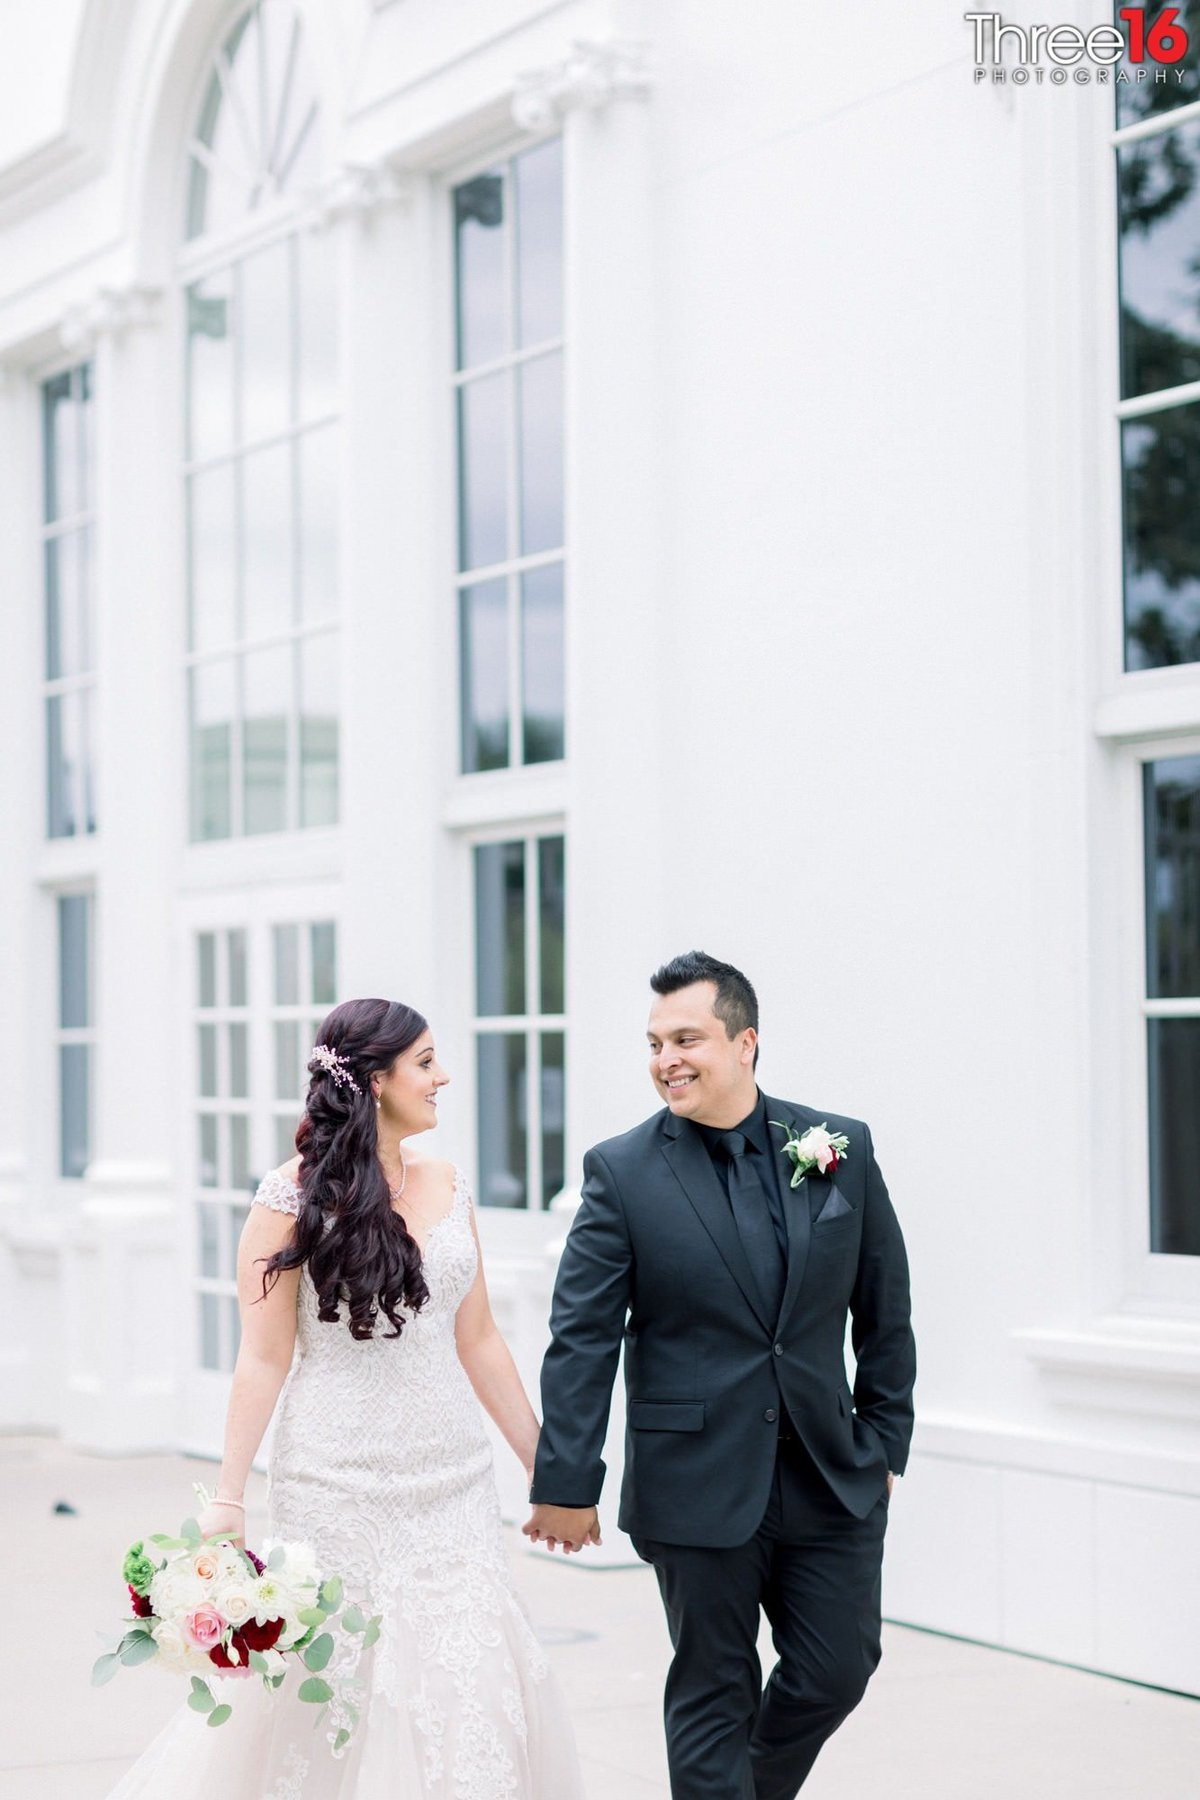 Bride and Groom smile at each other while holding hands